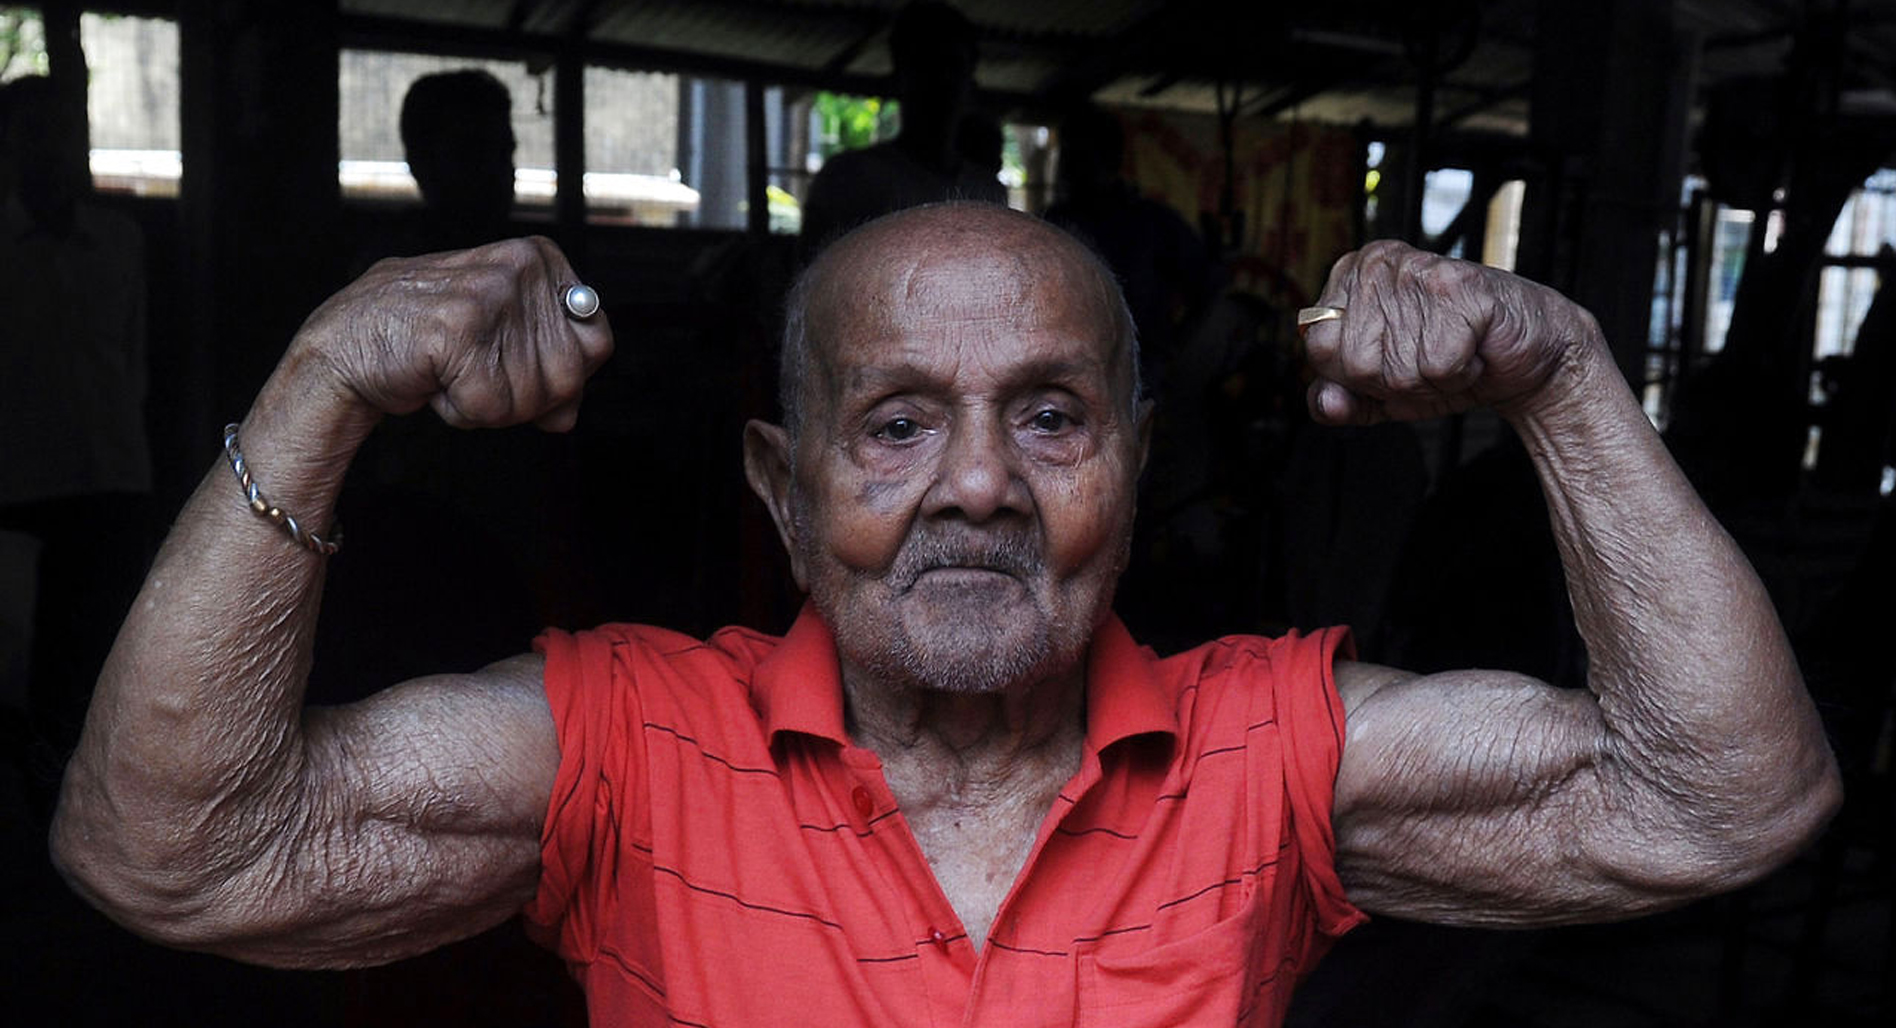 World's oldest bodybuilder at 103 years!